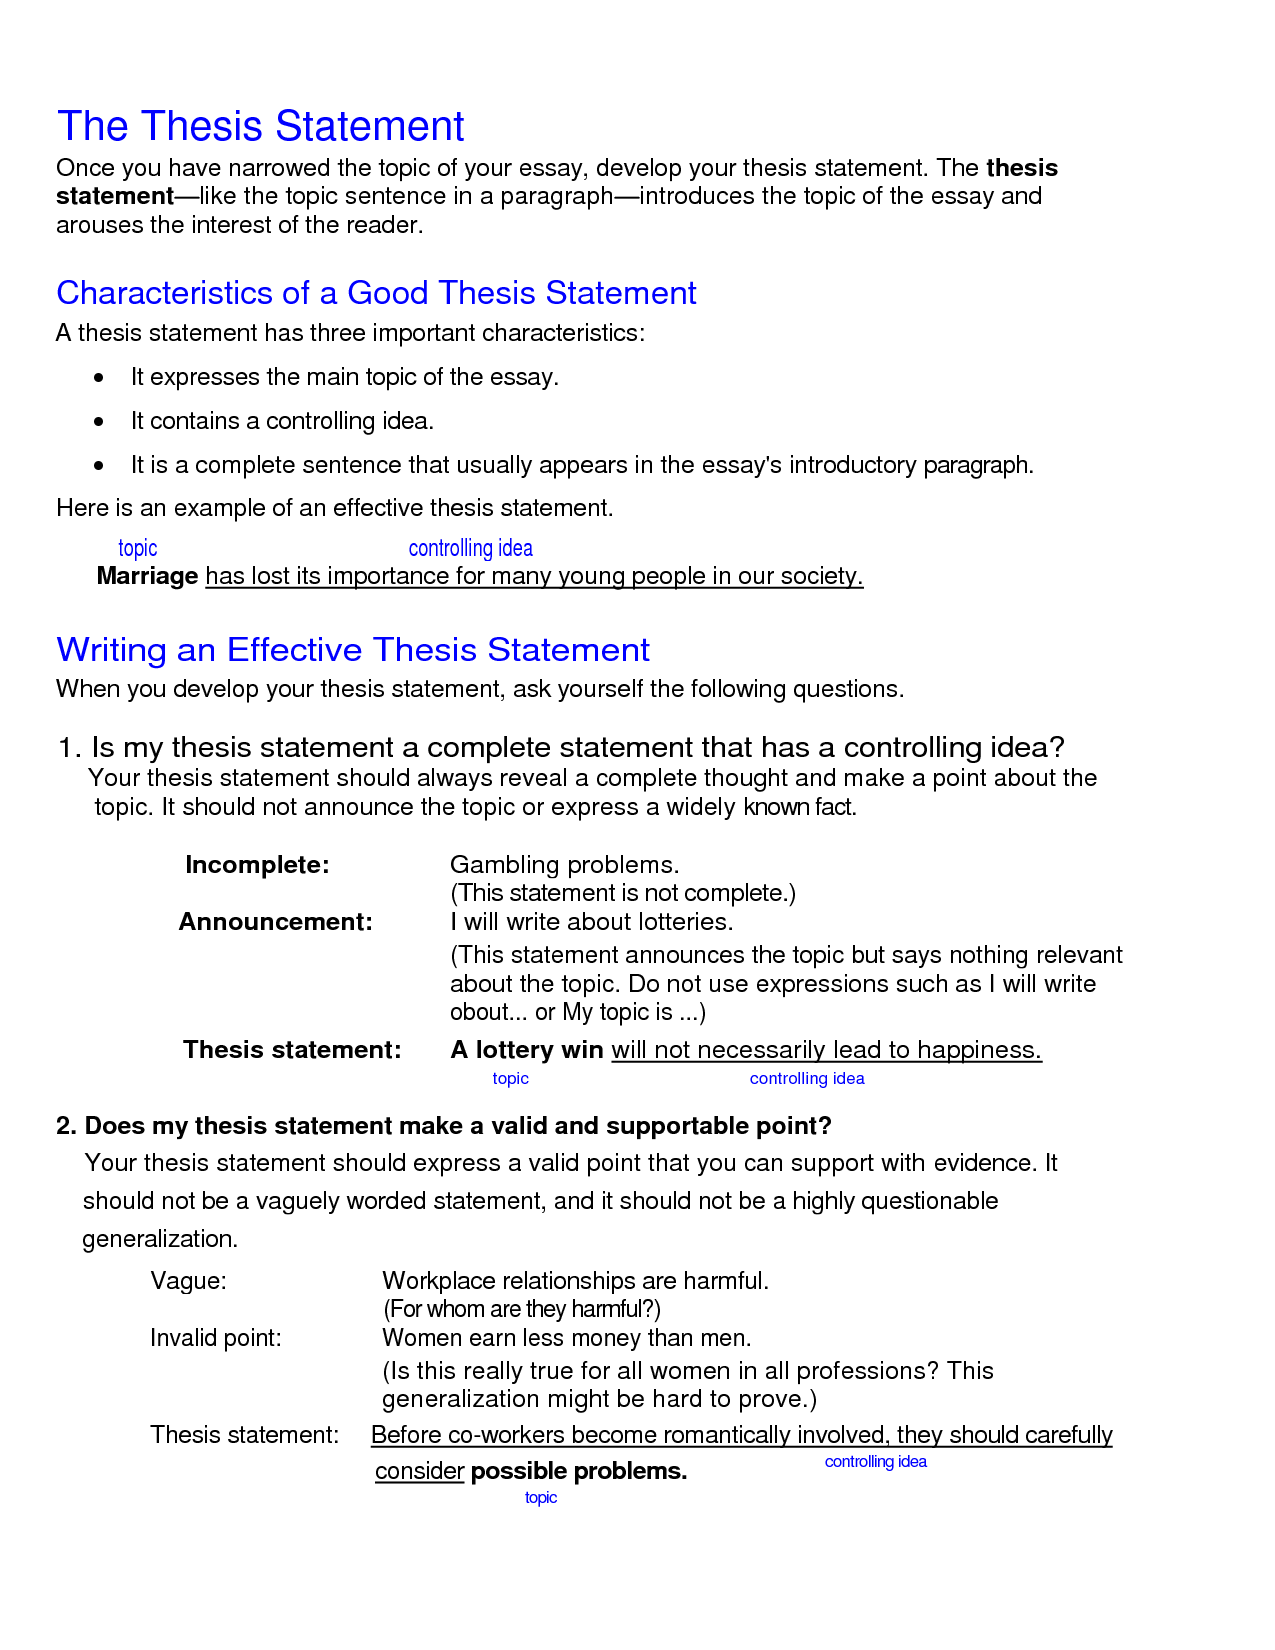 024 Essay Example Thesis Statement For Persuasive Template Unusual Argumentative On Social Media Abortion Gun Control Full